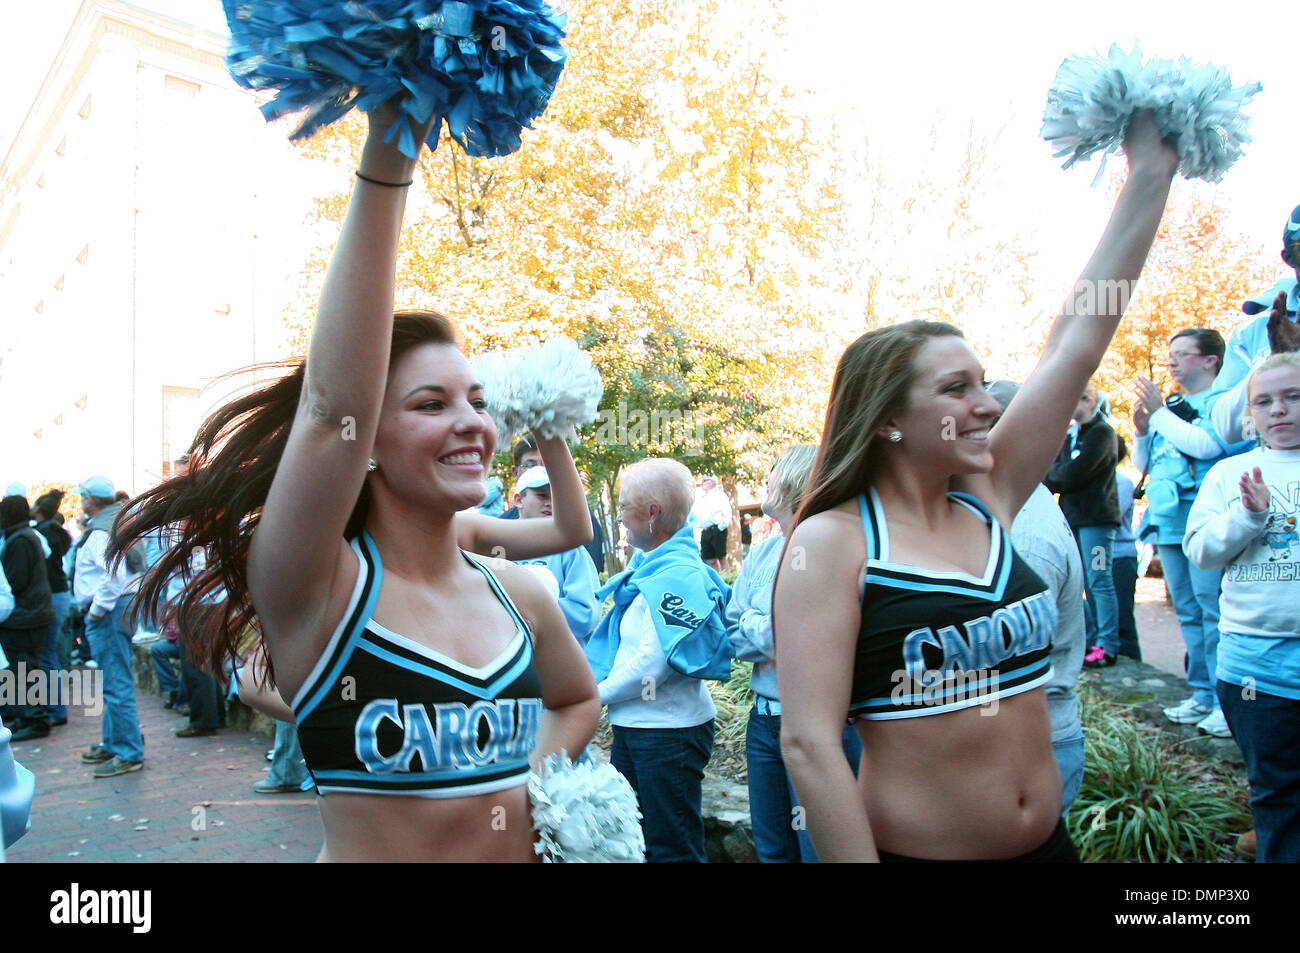 Nov. 07, 2009 - Chapel Hill, North Carolina, U.S - November 7, 2009: UNC cheerleaders greet fans at the pregame ''Well Walk'' from the Old Well to Kenan Stadium two hours prior to the game against Duke.  The University of North Carolina Tarheels played the Duke Blue Devils at Kenan Stadium in Chapel Hill, North Carolina (Credit Image: © Margaret Bowles/Southcreek Global/ZUMApress.c - Stock Image